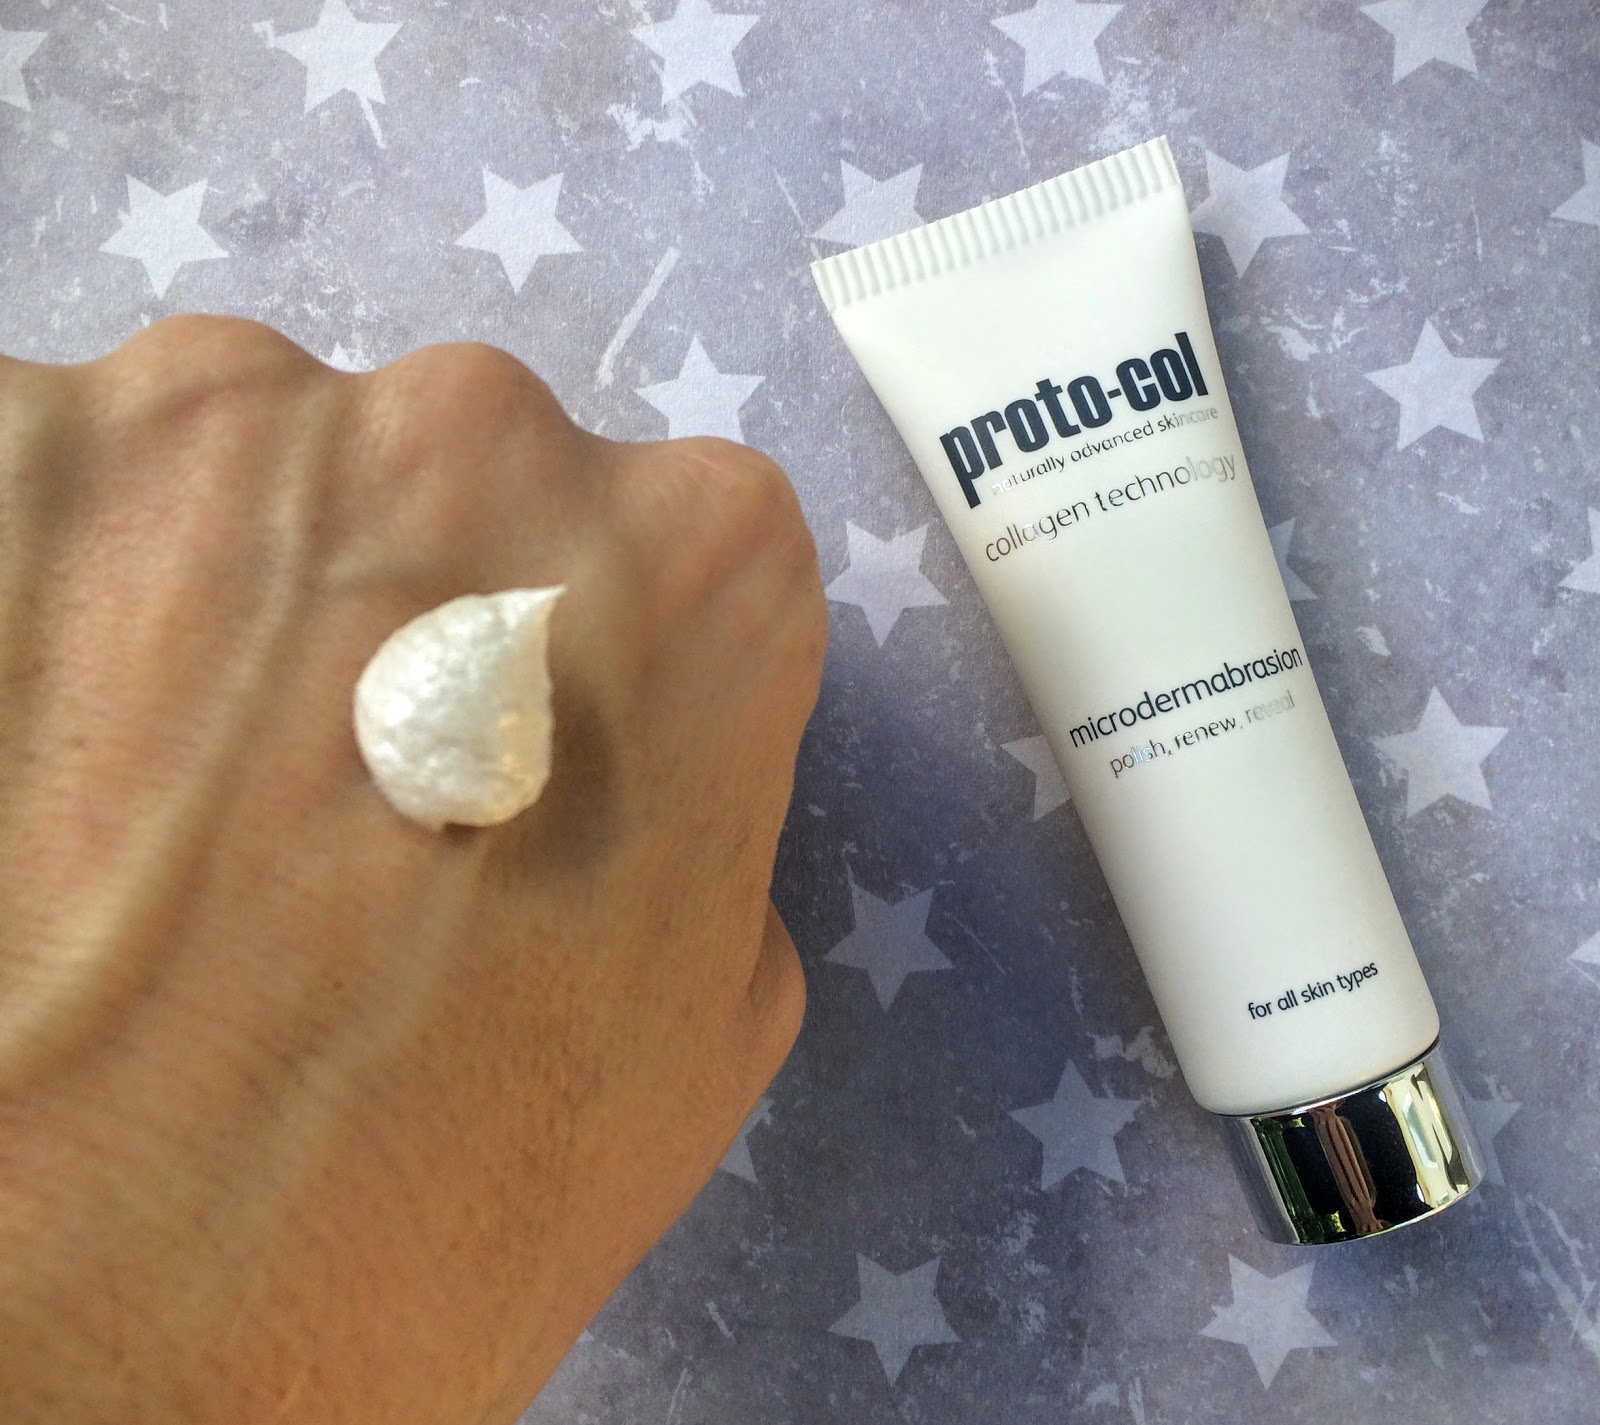 proto-col microdermabrasion on back of hand